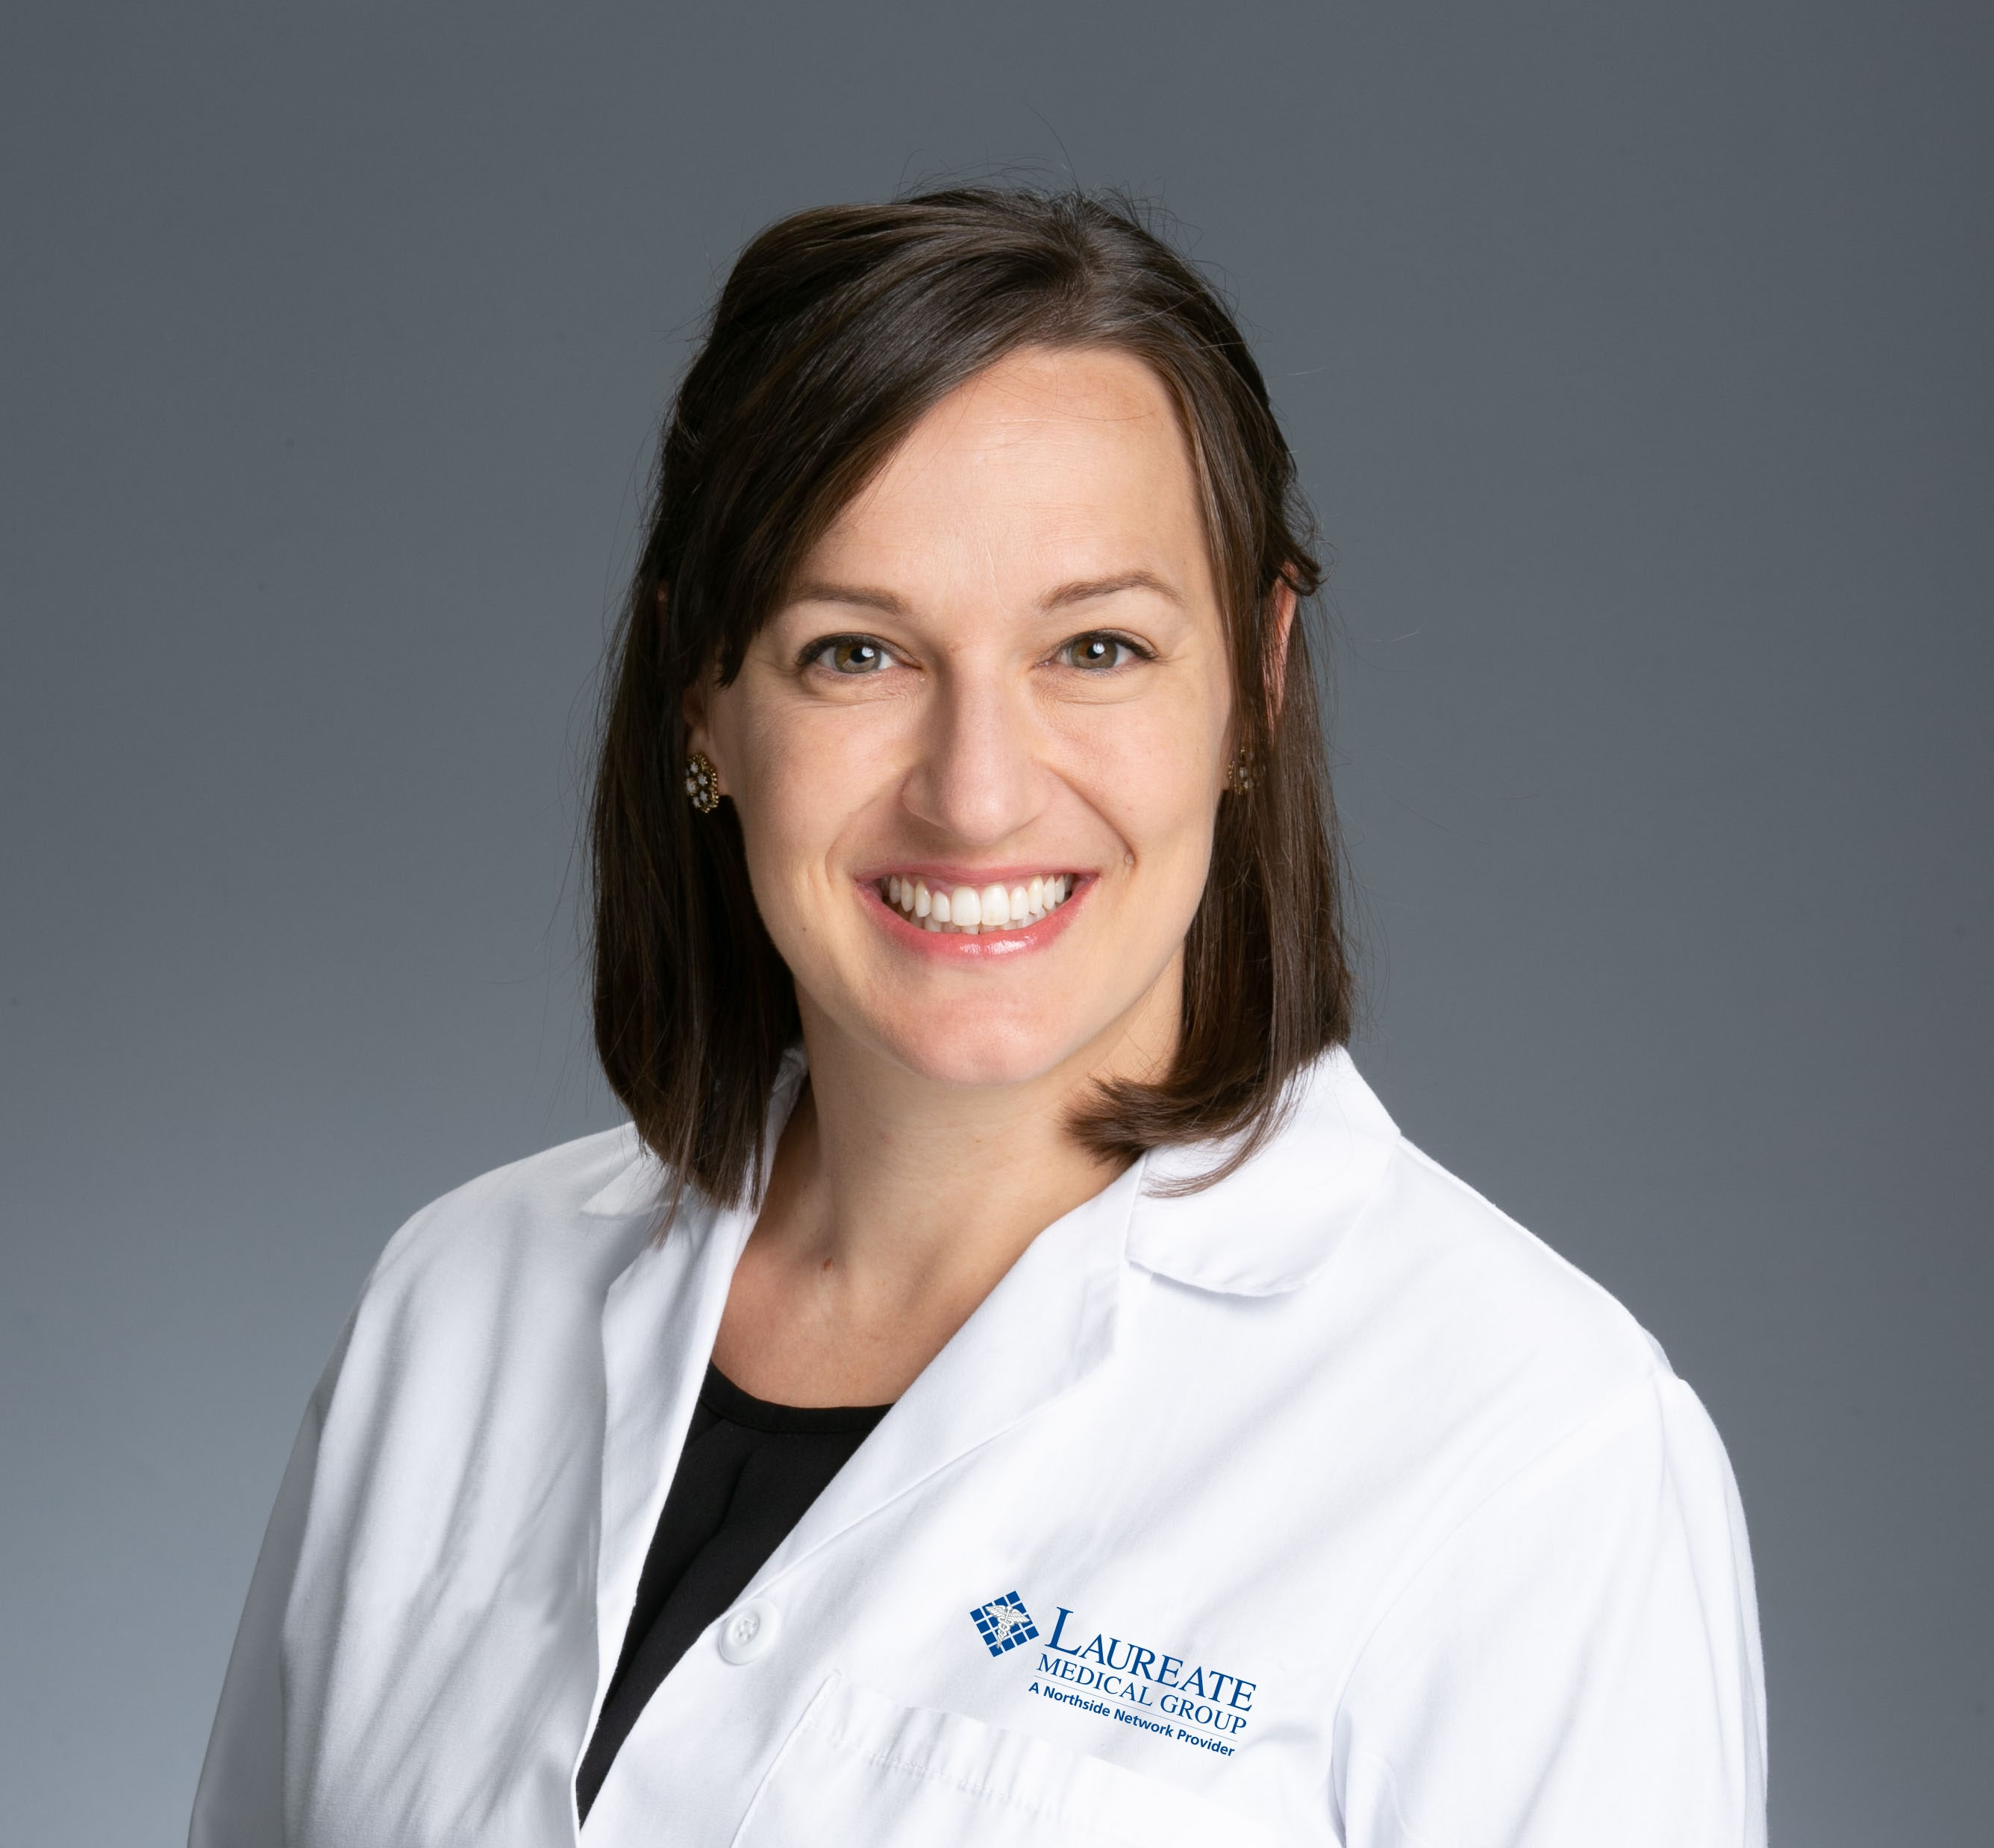 Dr. Sarah G French MD